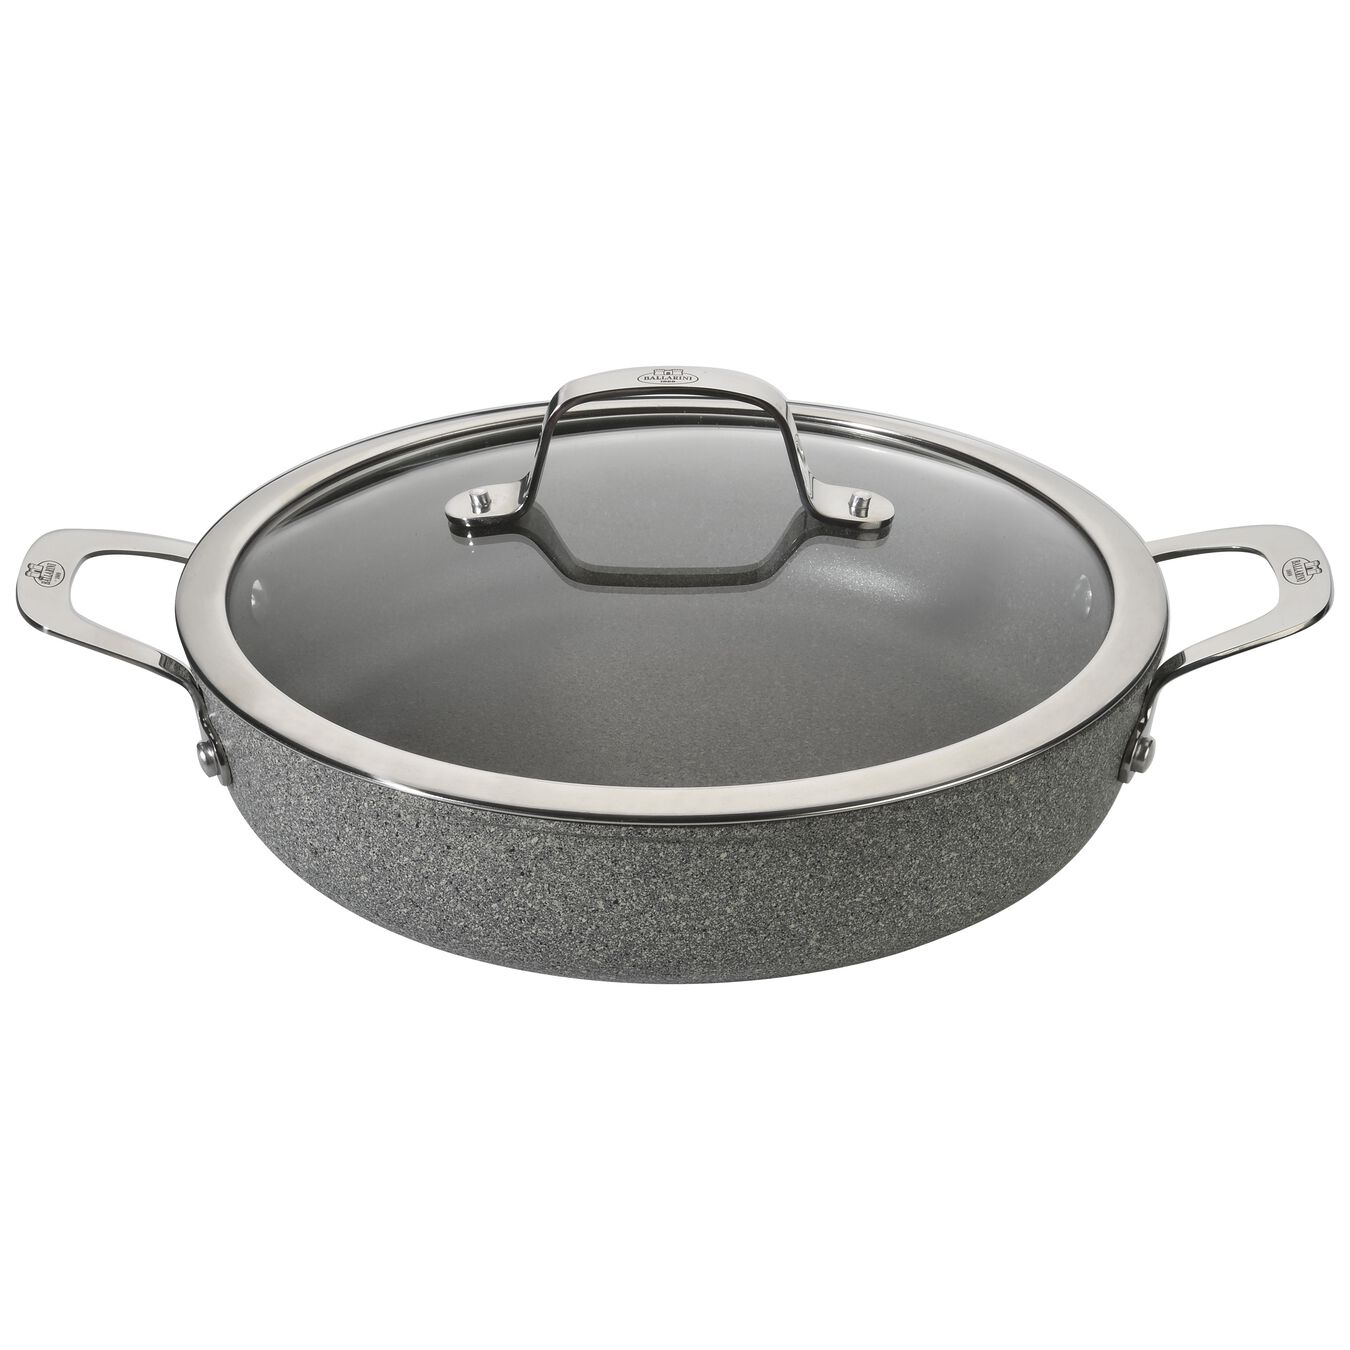 round Saucier and sauteuse with lid, stone grey,,large 1